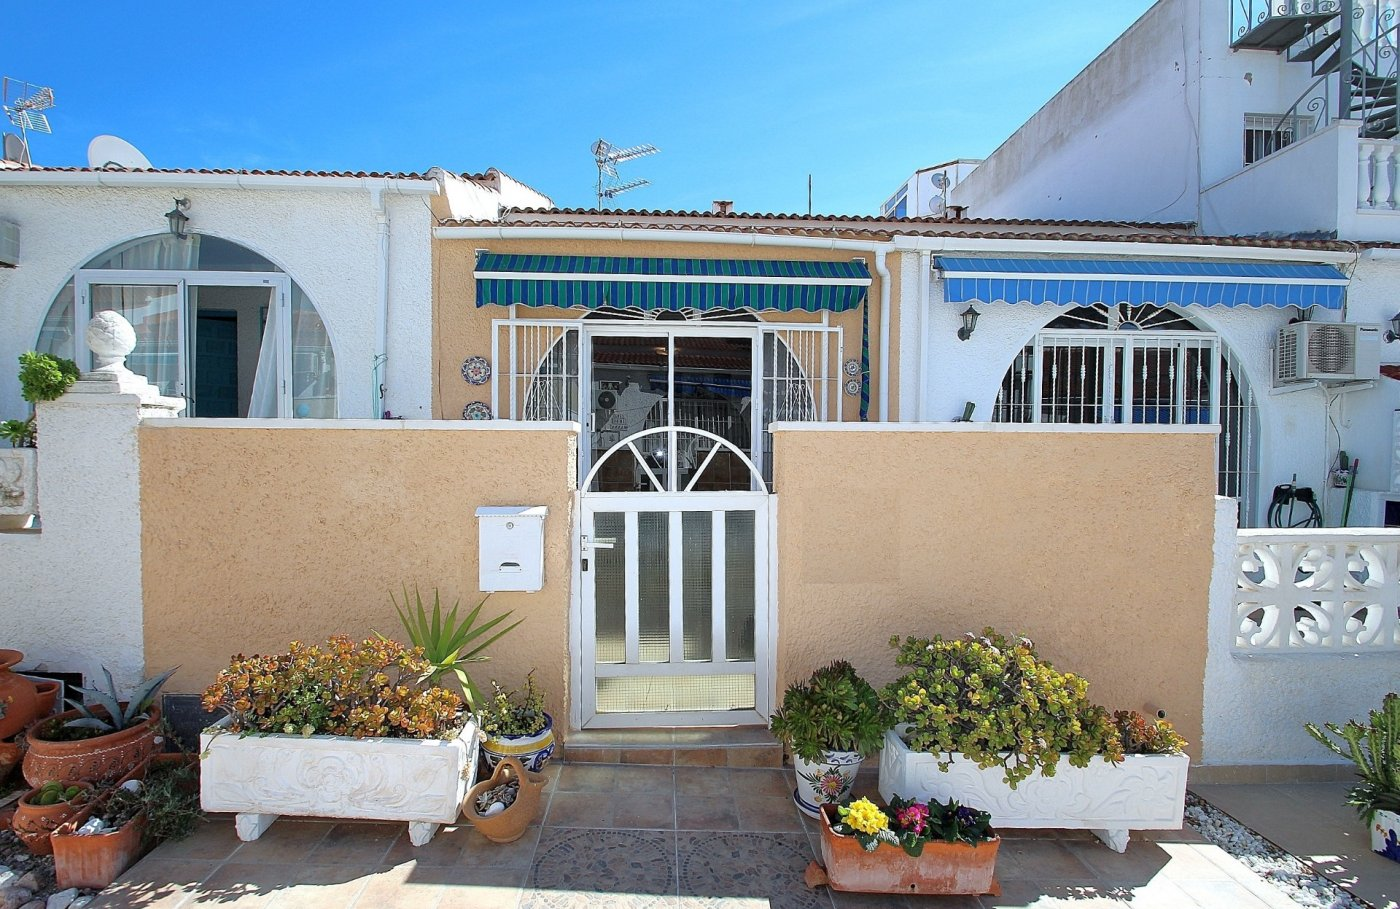 RENOVATED BUNGALOW IN LA SIESTA - TORREVIEJA (La siesta)